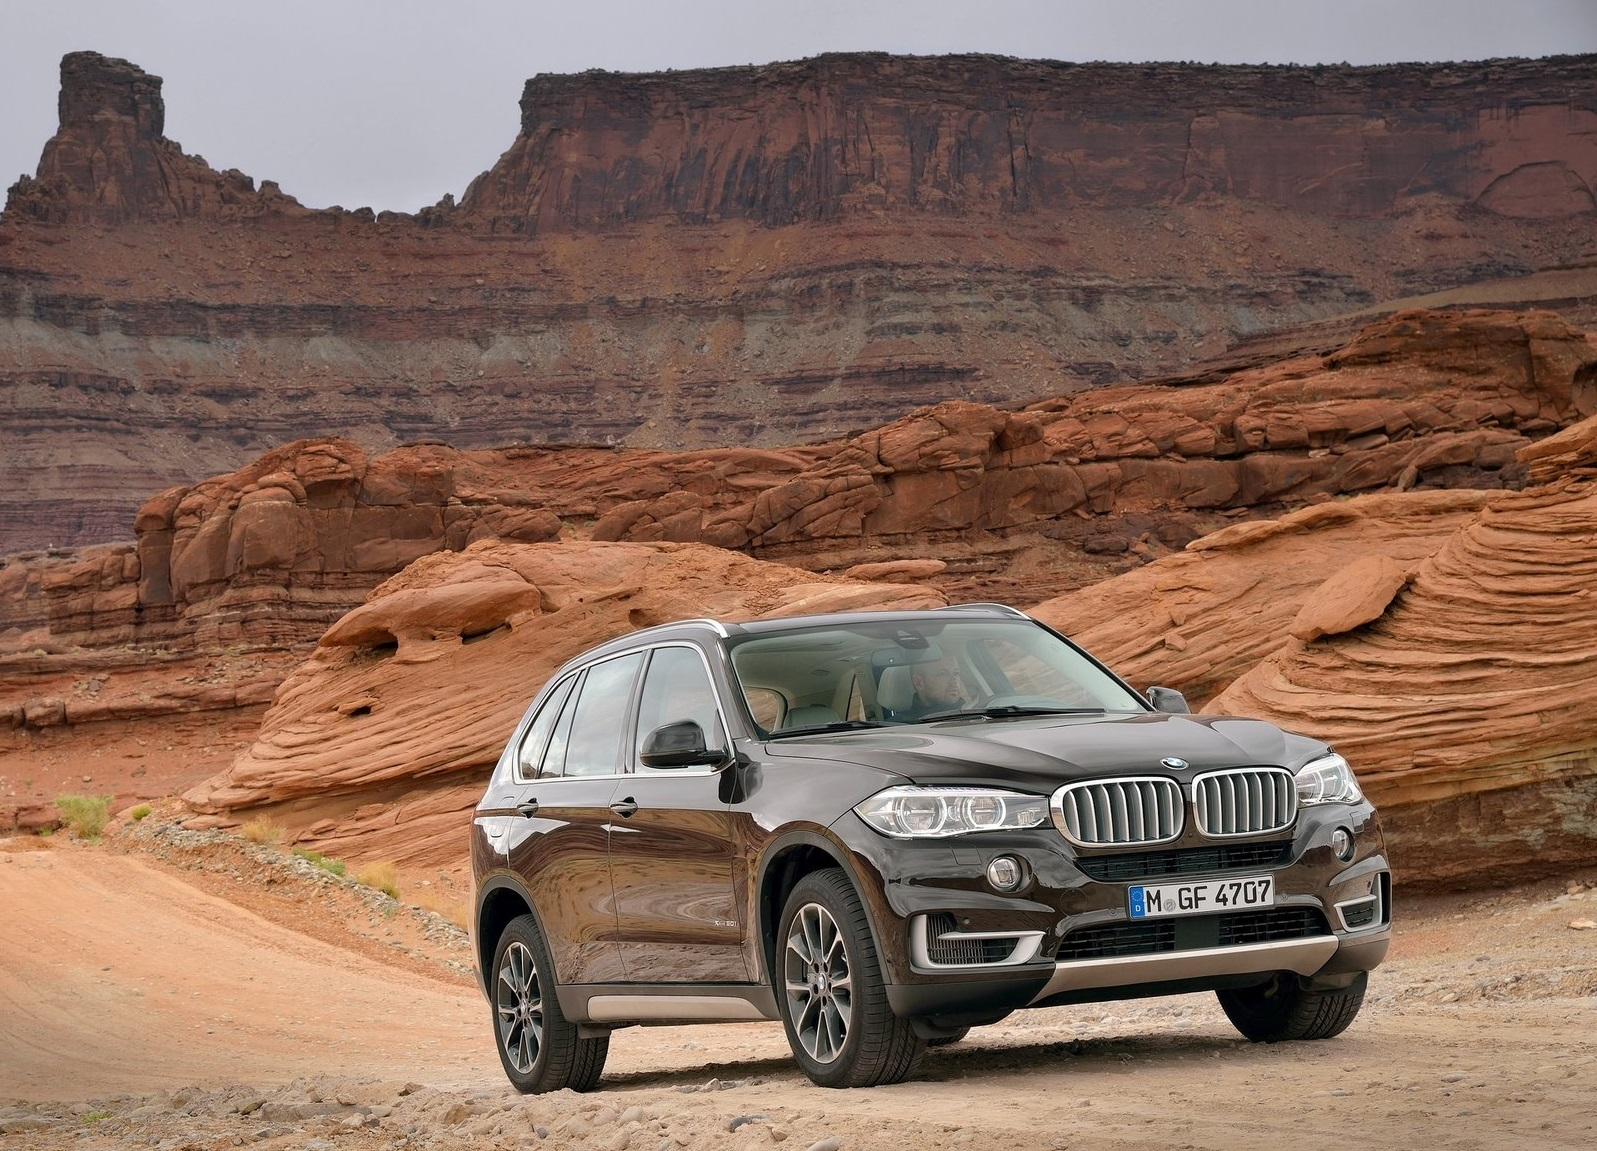 BMW X5 2014 1600x1200 wallpaper 06